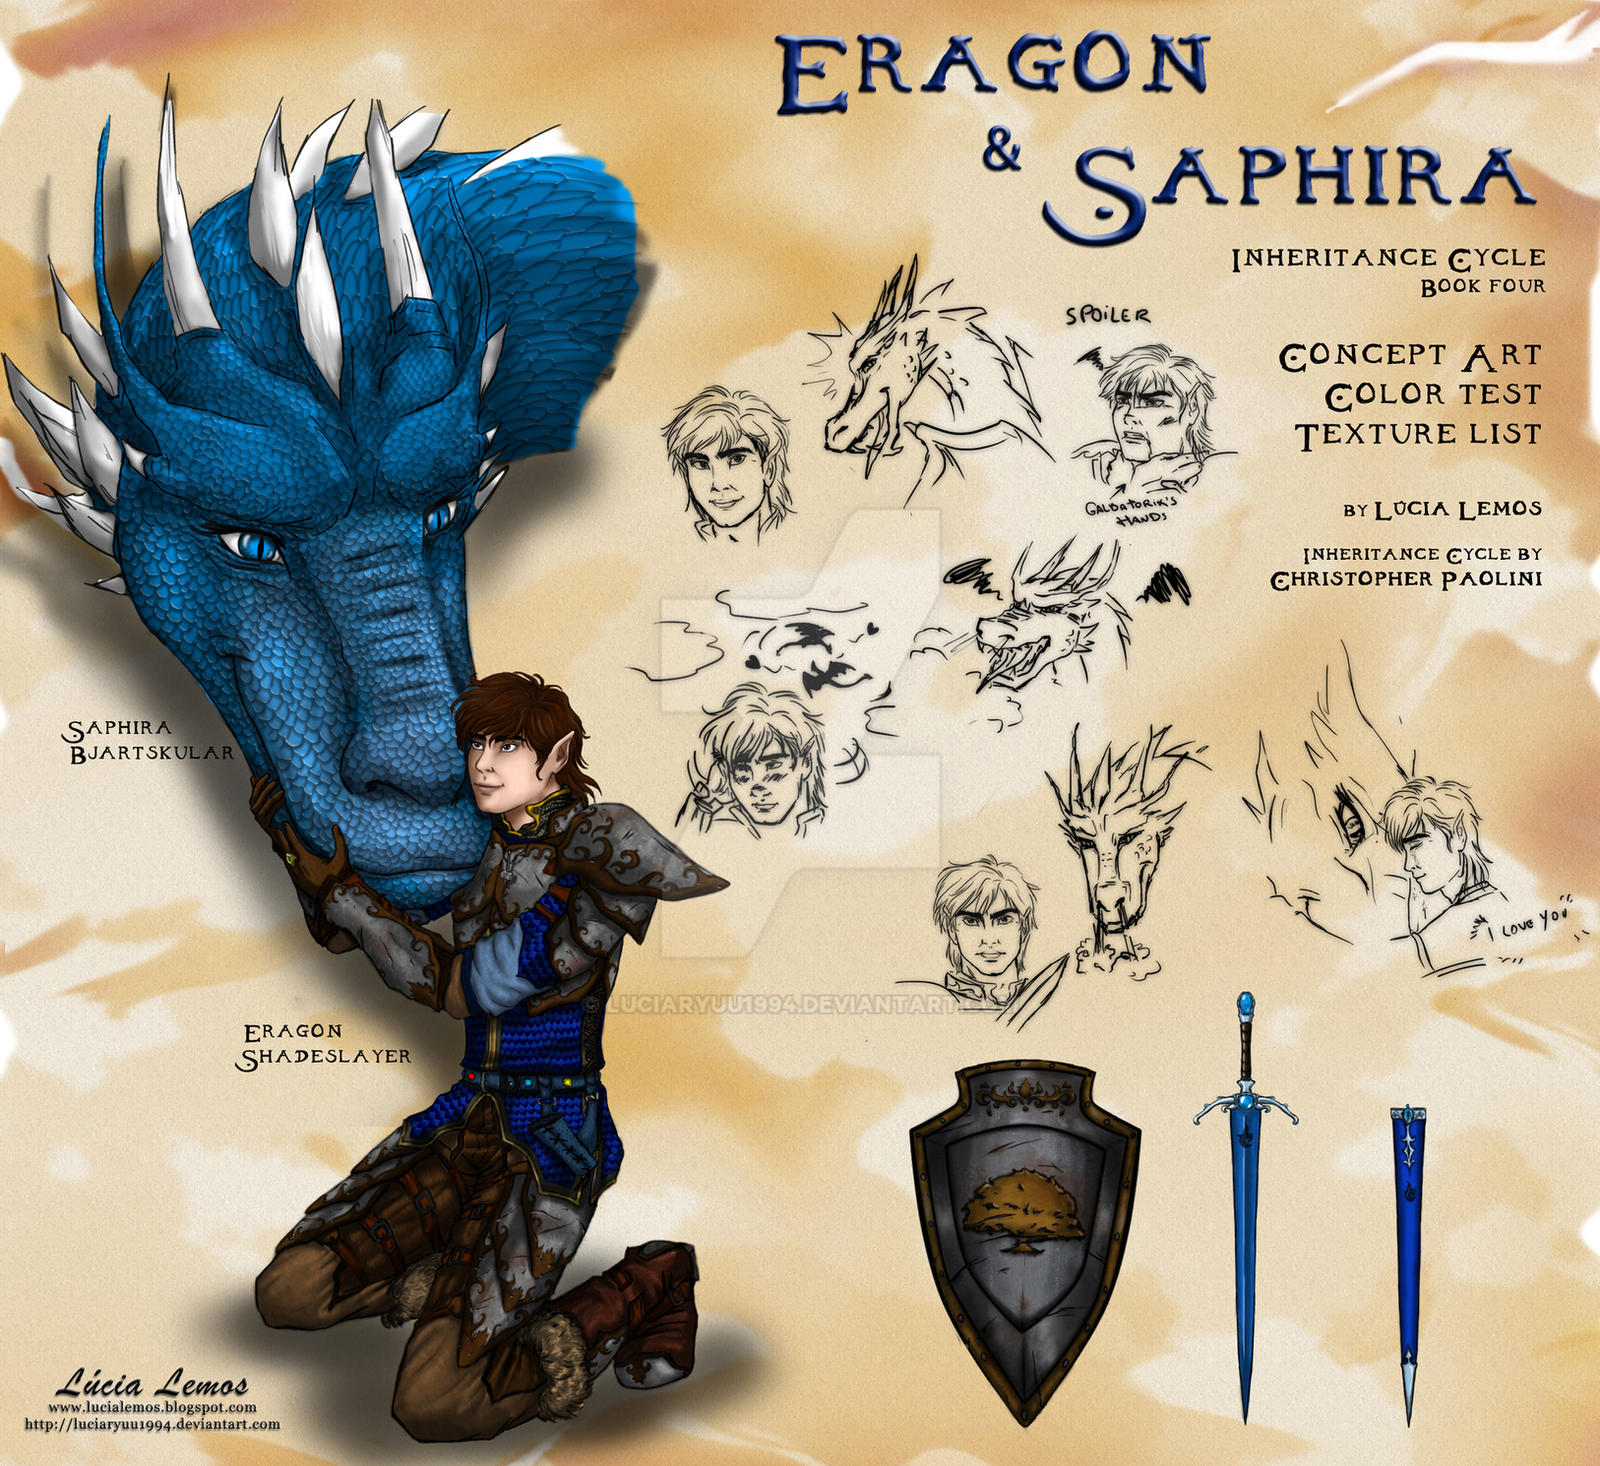 eragon essay topics Eragon and saphira eragon is about a boy who finds a weird blue stone which later turns out to be a dragons egg in my diorama i show the scene were eragon finds this egg in the mountain range of the spine.